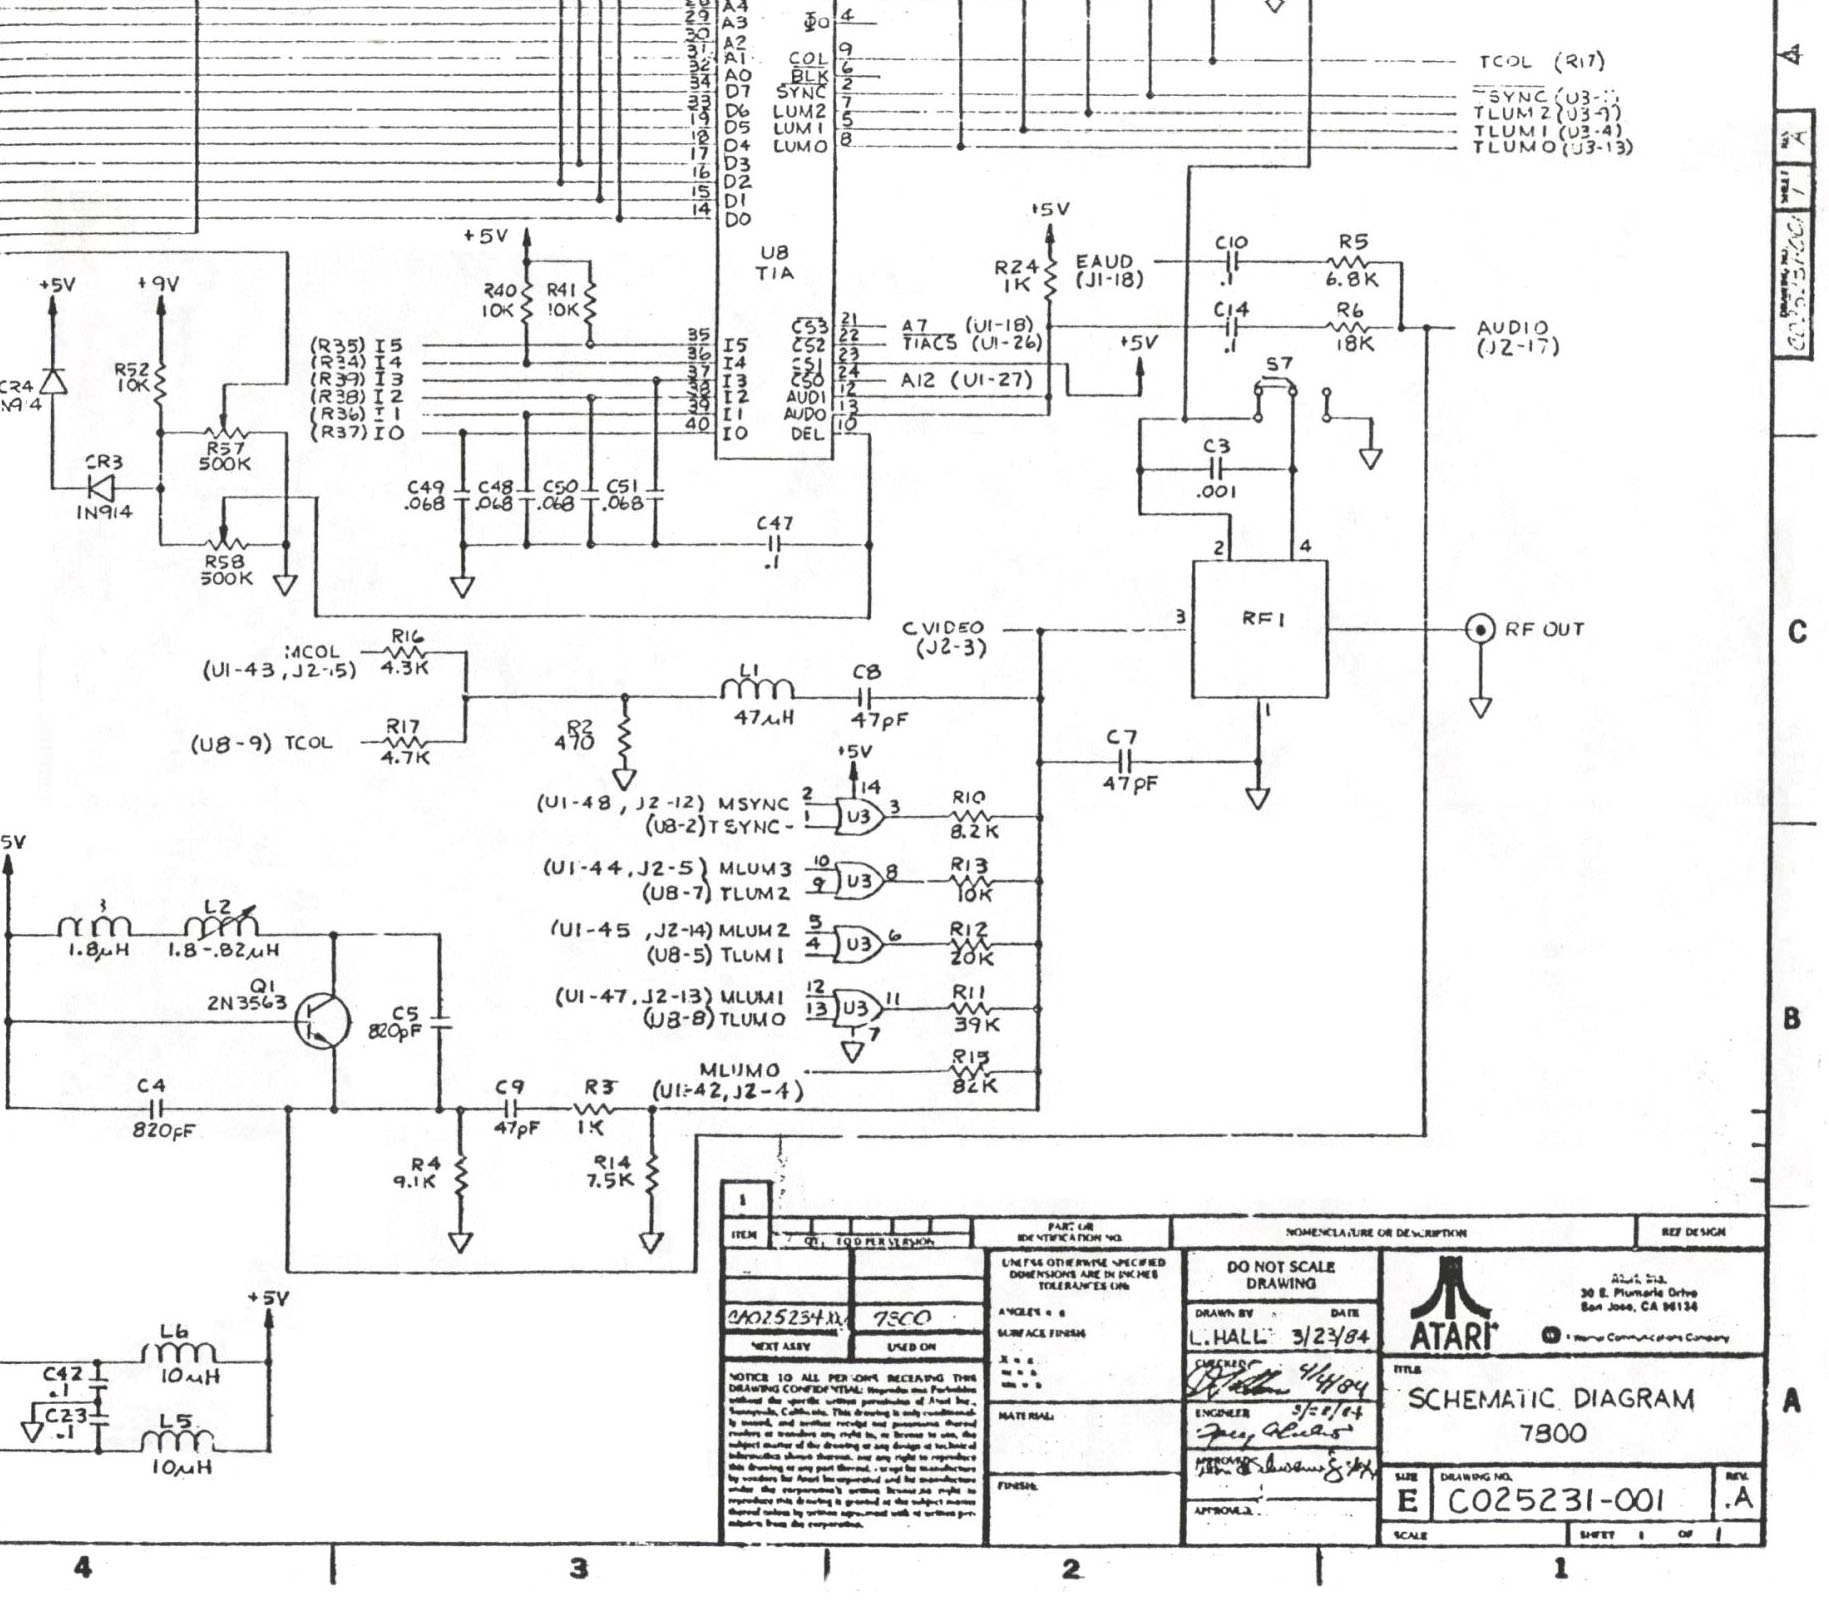 NTSClowerright atari schematics Western Joystick Controller Wiring Diagram at nearapp.co